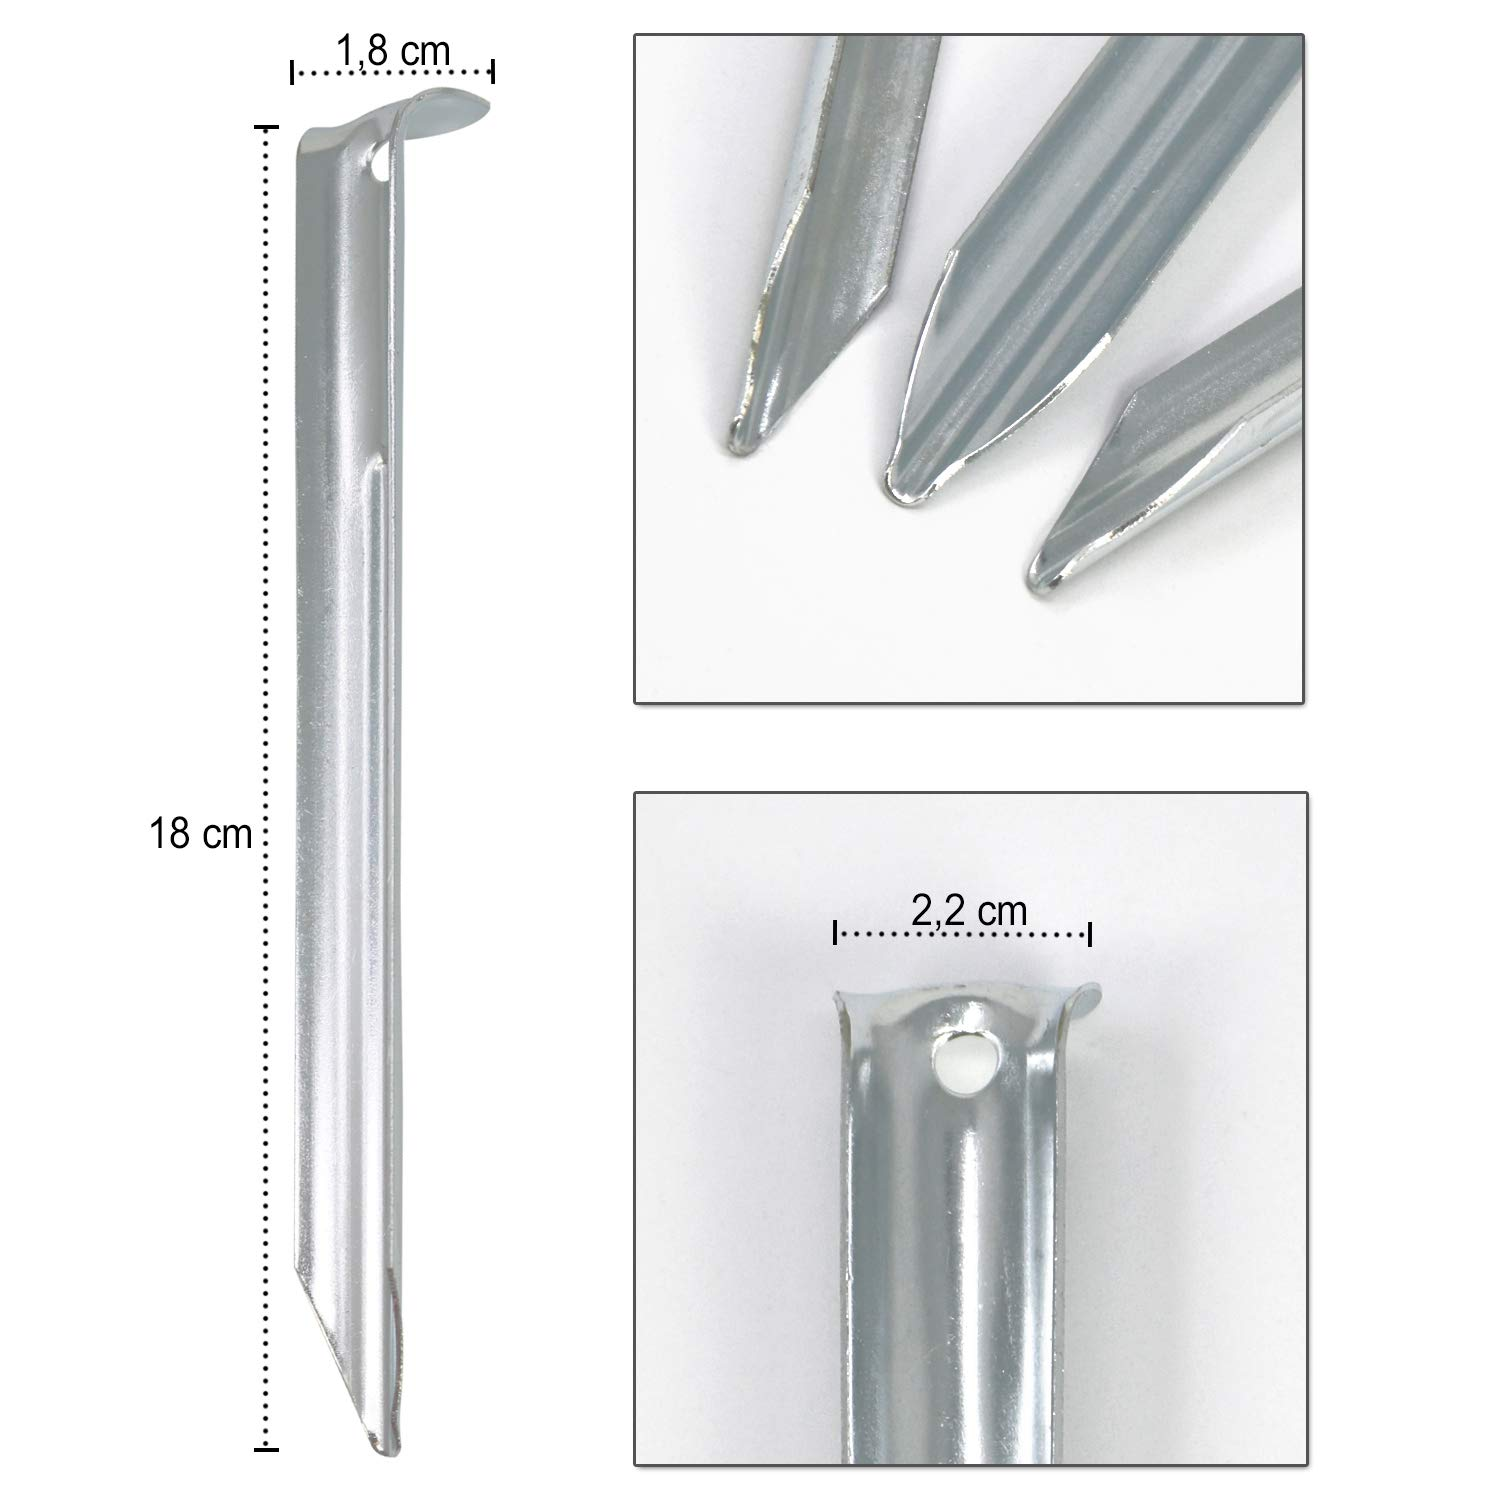 semi-round 180mm - 16 pieces half round COM-FOUR/® 16x steel tent pegs ideal for normal ground robust pegs for camping and outdoor